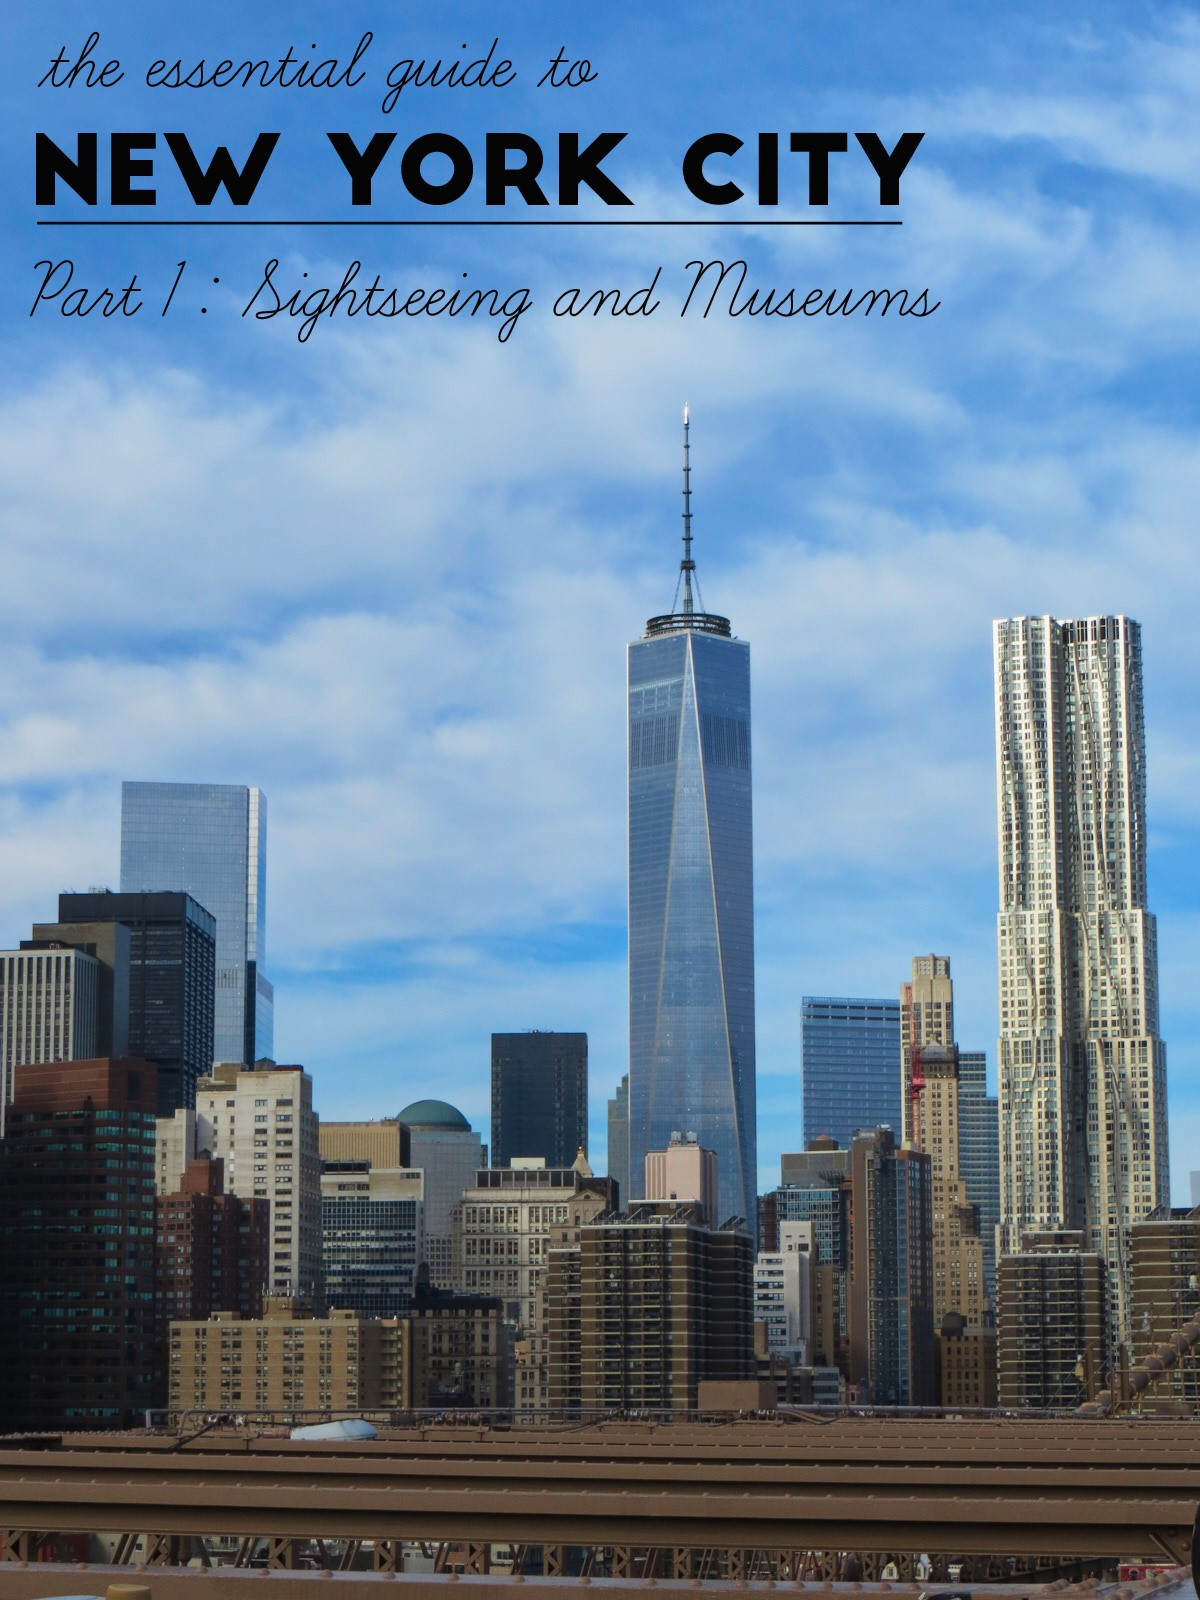 The Essential Guide to New York City – Sightseeing & Museums